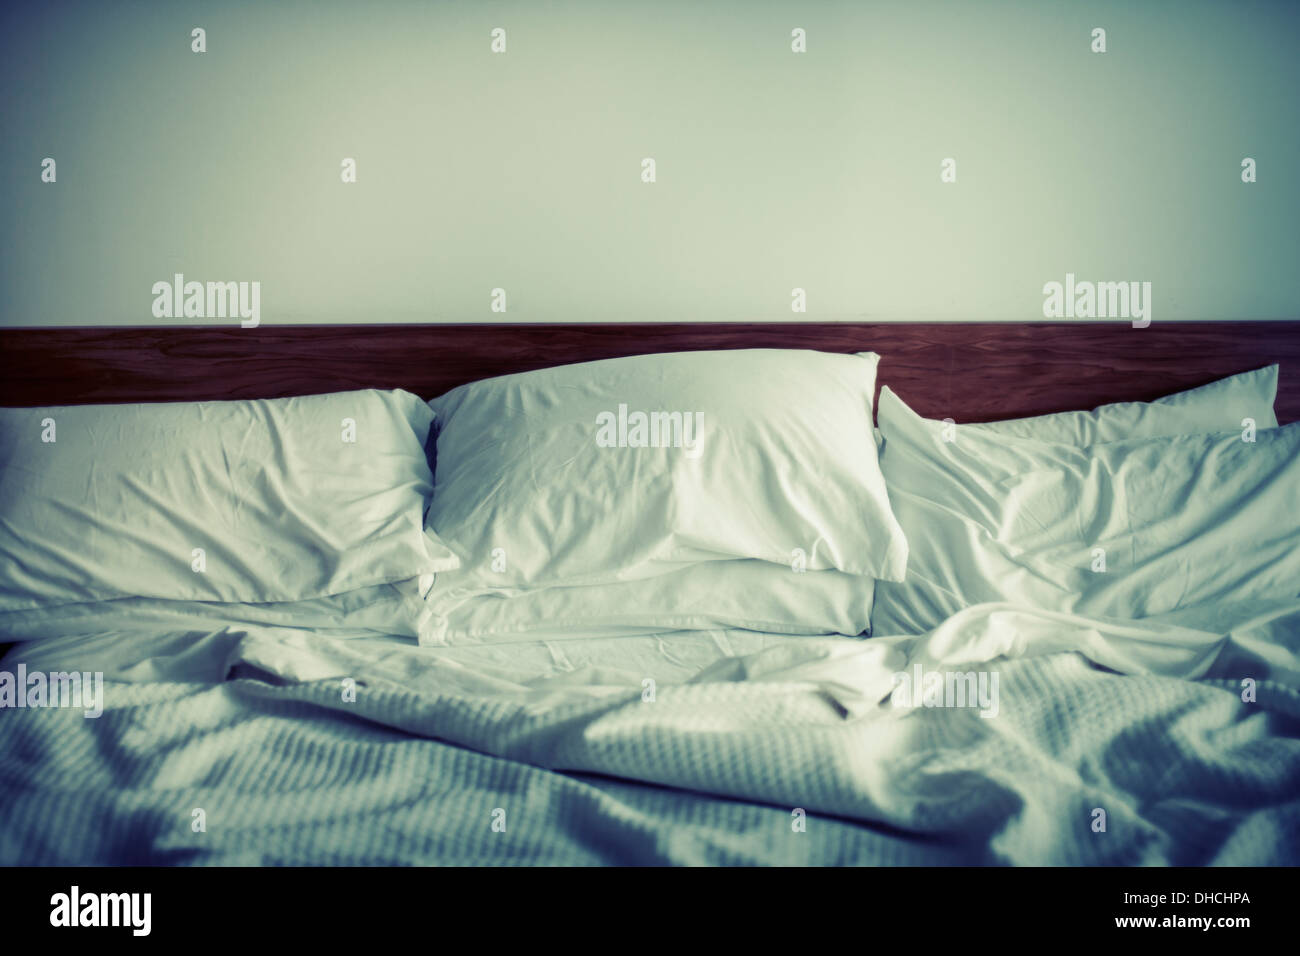 Kingsize bed with 6 pillows - Stock Image